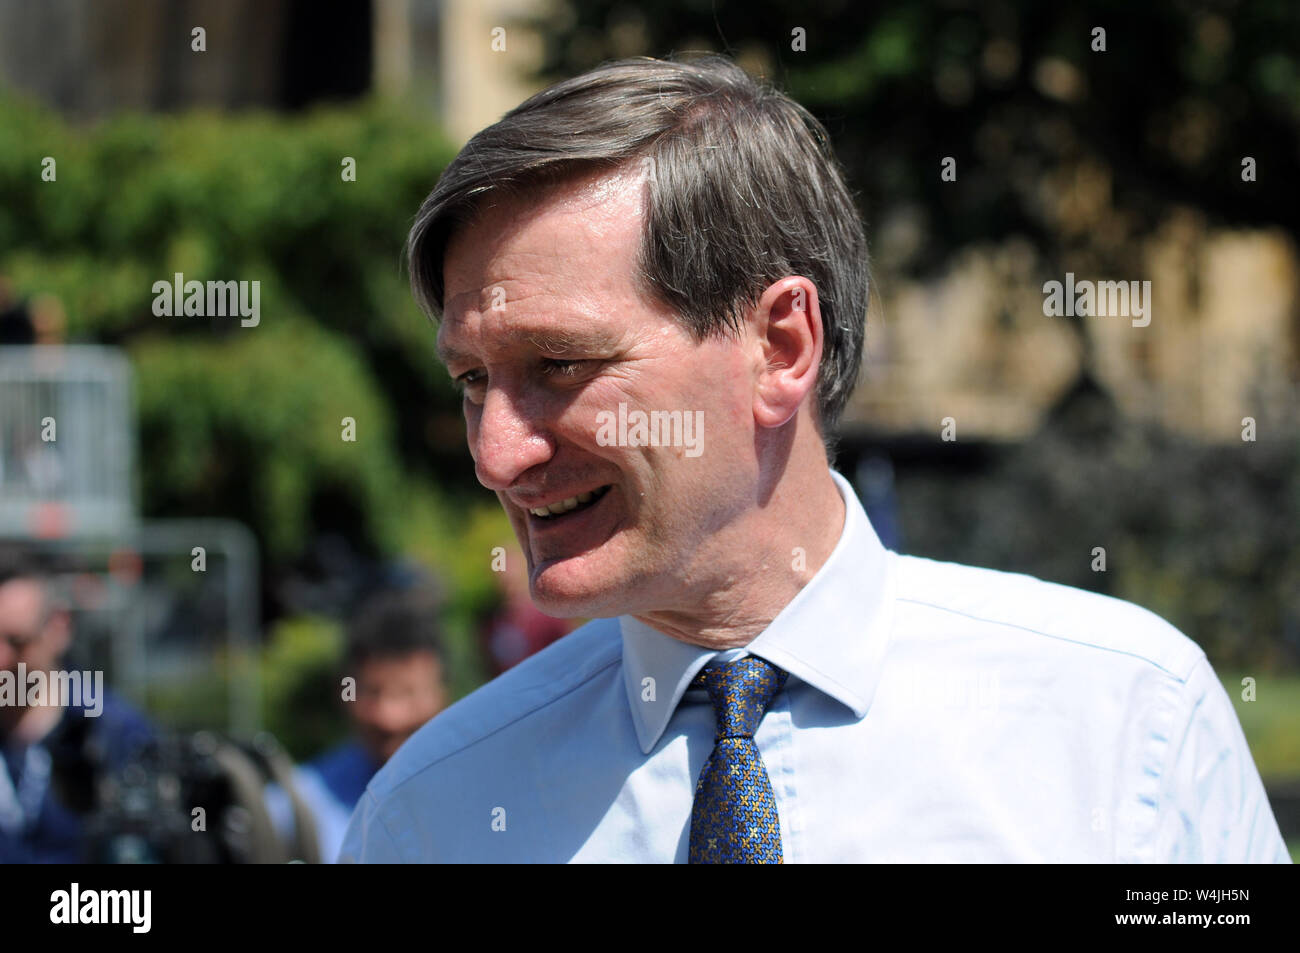 London, UK, 23 July 2019 Dominic Grieve MP. Politicians attend Boris Johnson election results as leader of the Conservative Party at the Queen Elizabeth Center. Credit: JOHNNY ARMSTEAD/Alamy Live News Stock Photo